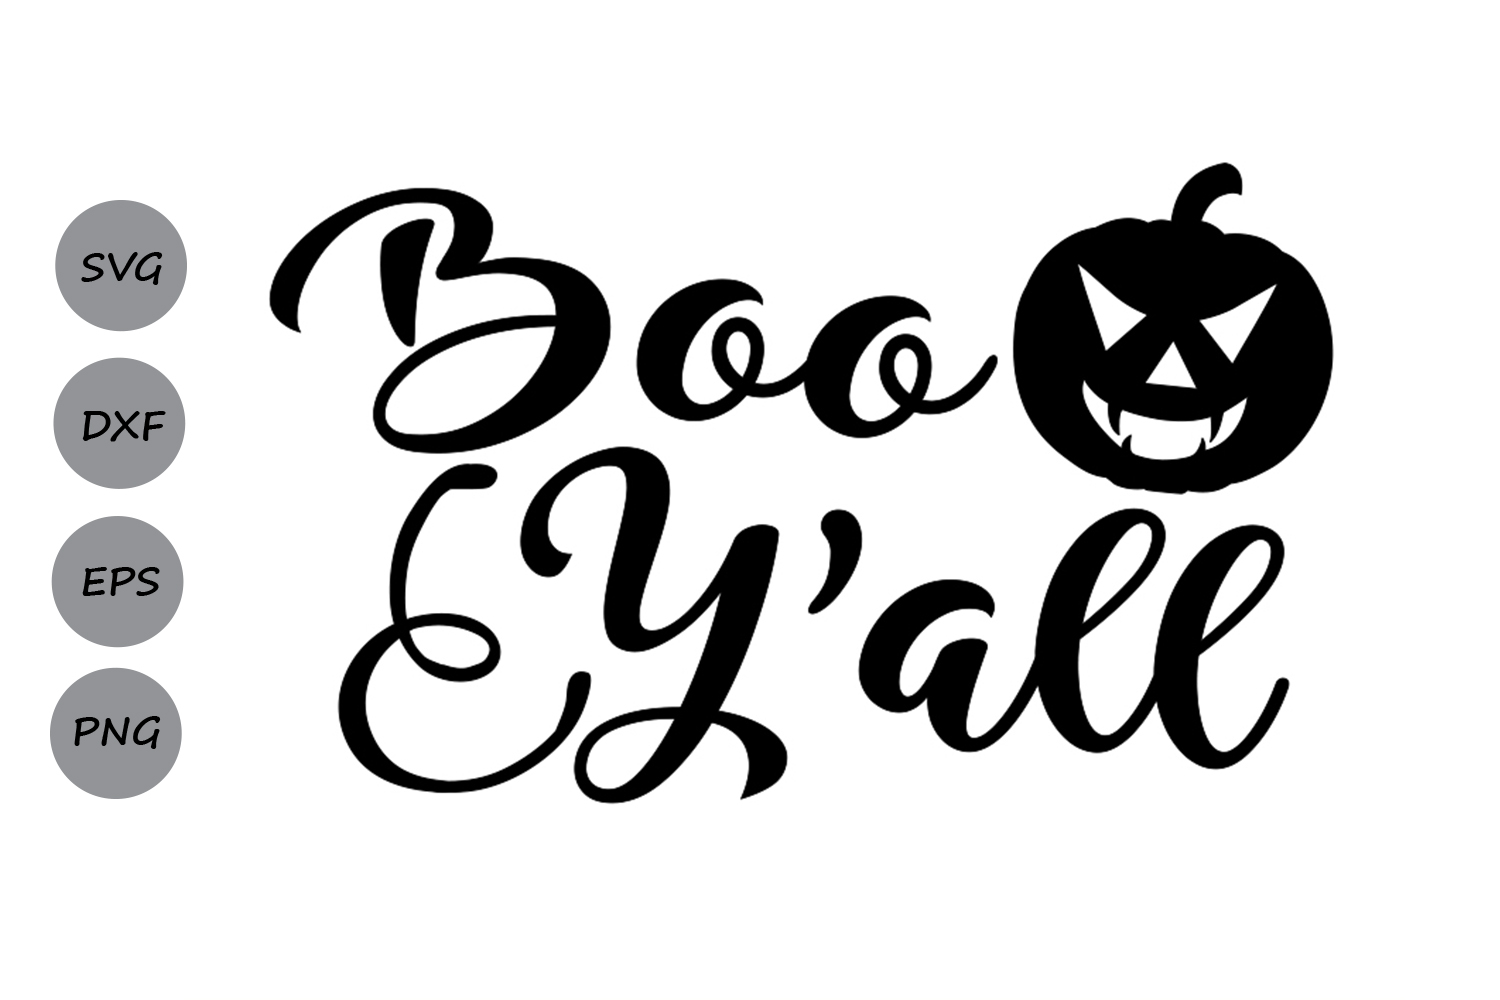 Download Free Boo Y All Svg Graphic By Cosmosfineart Creative Fabrica for Cricut Explore, Silhouette and other cutting machines.